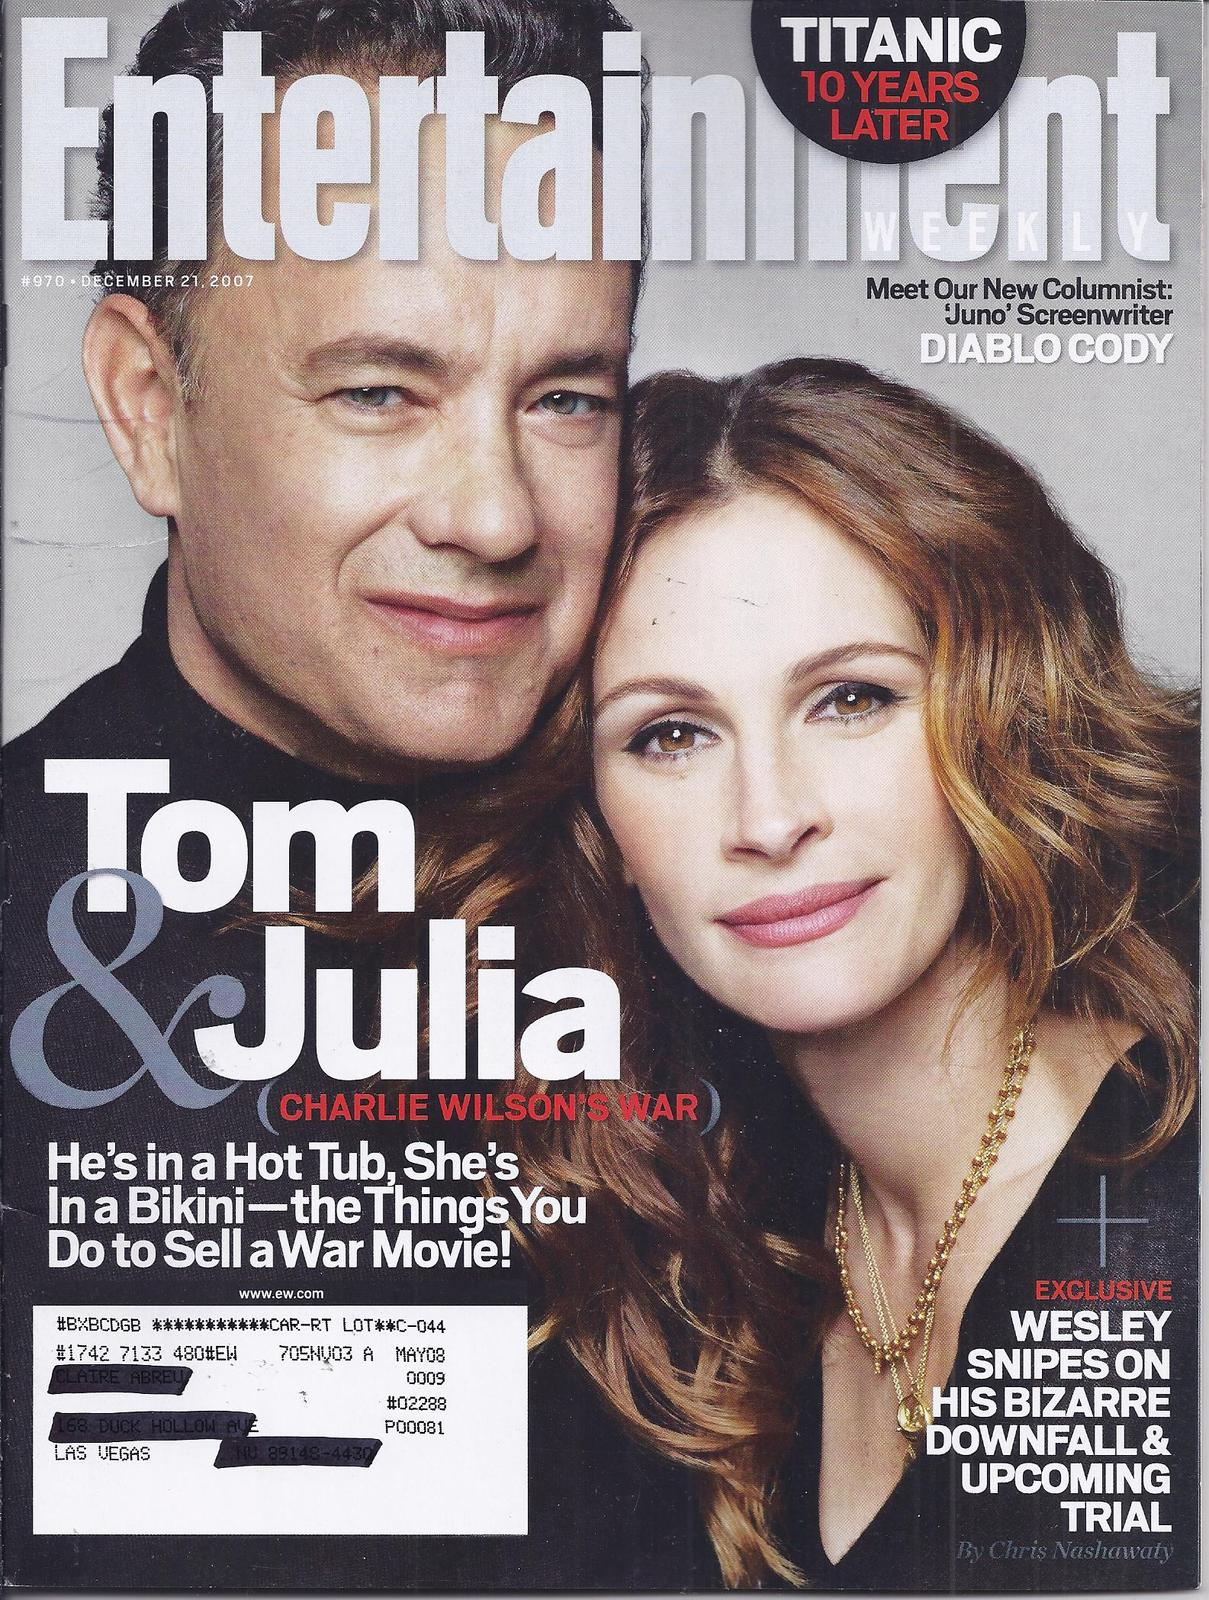 Titanic 10 Years Later, TOM & JULIA @ Entertainment Weekly DEC 2007